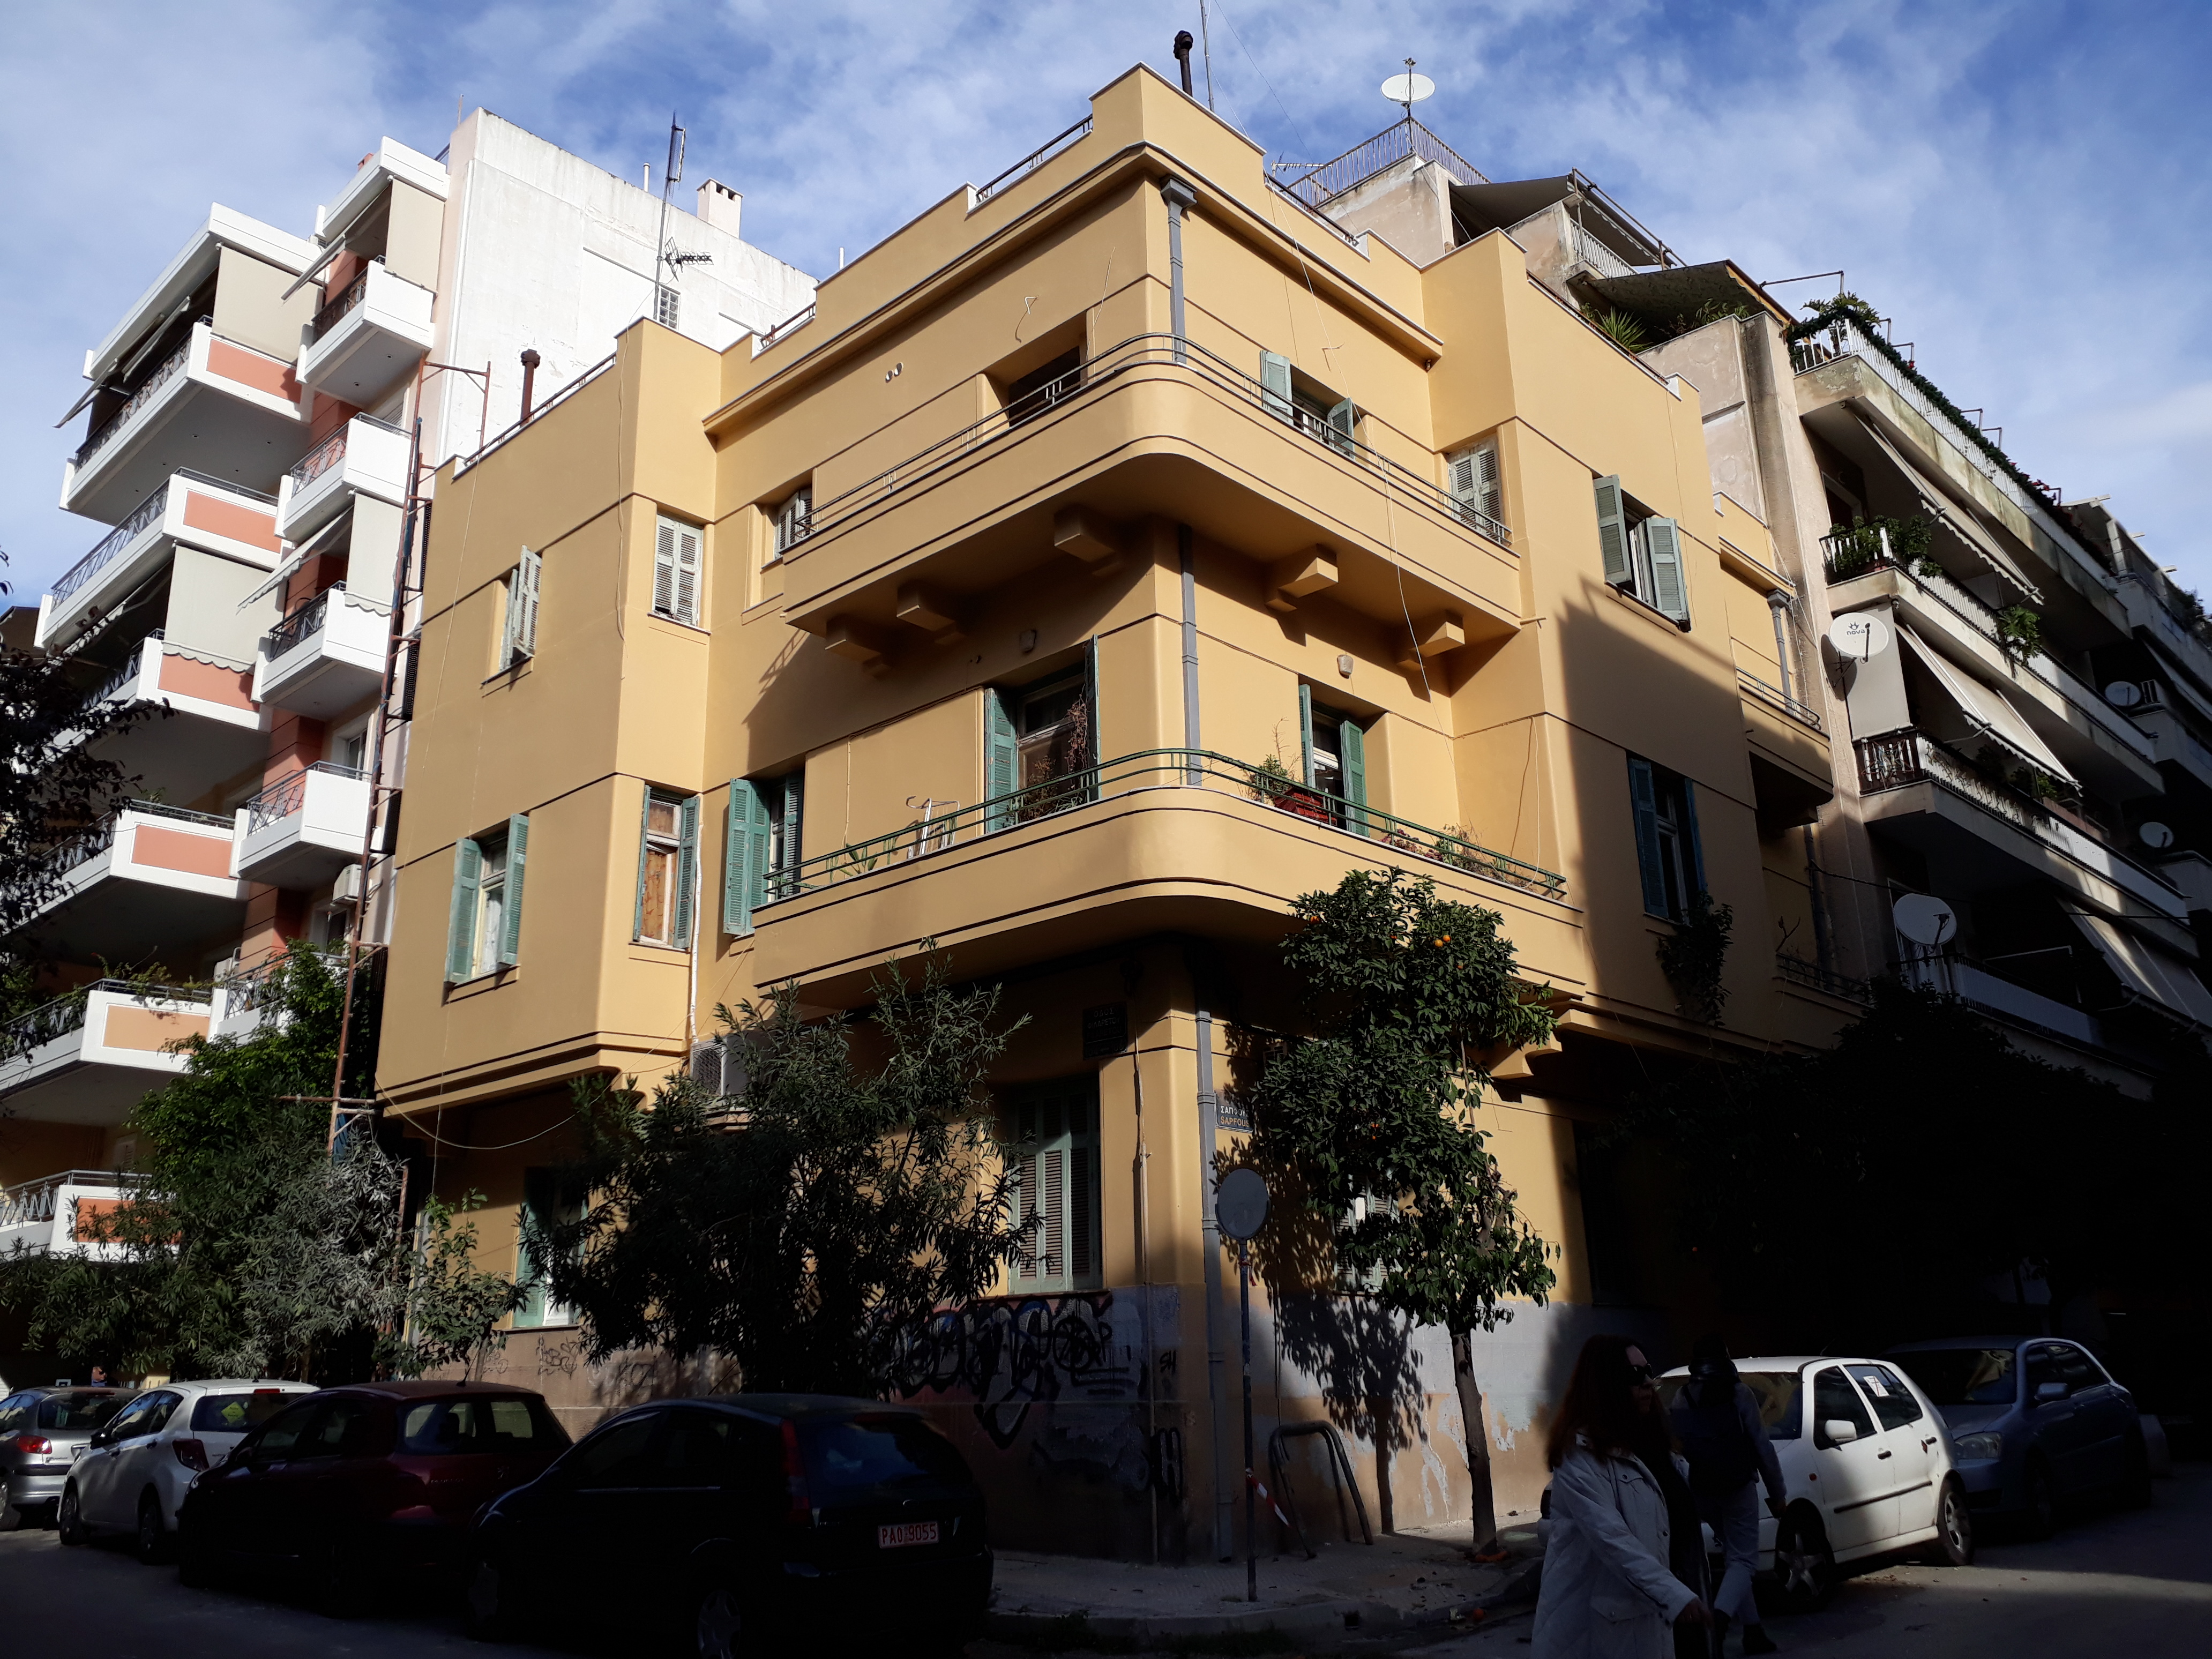 Two apartments in Callithea, Athens